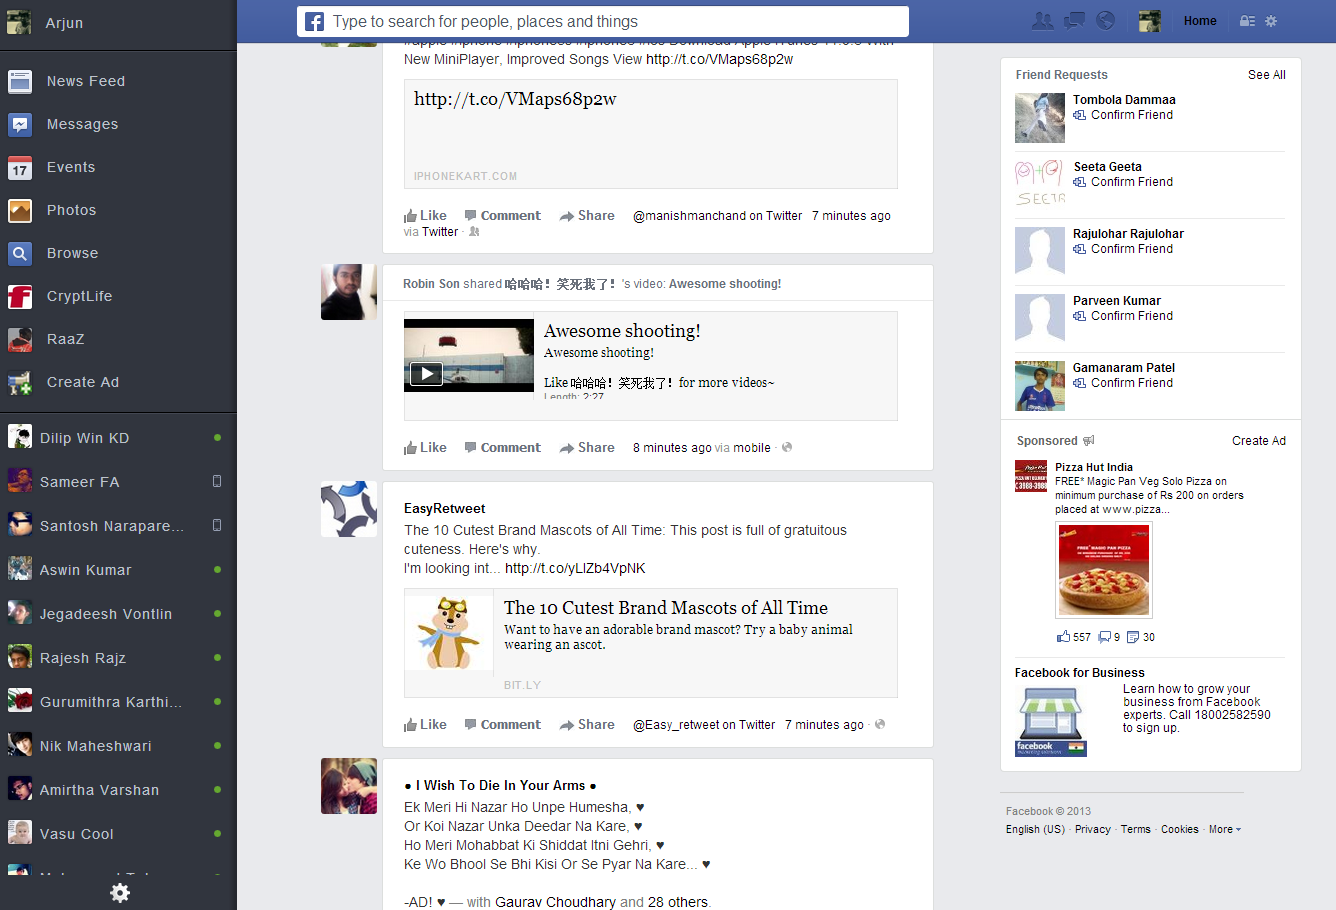 Get New News Feed on Facebook before official update